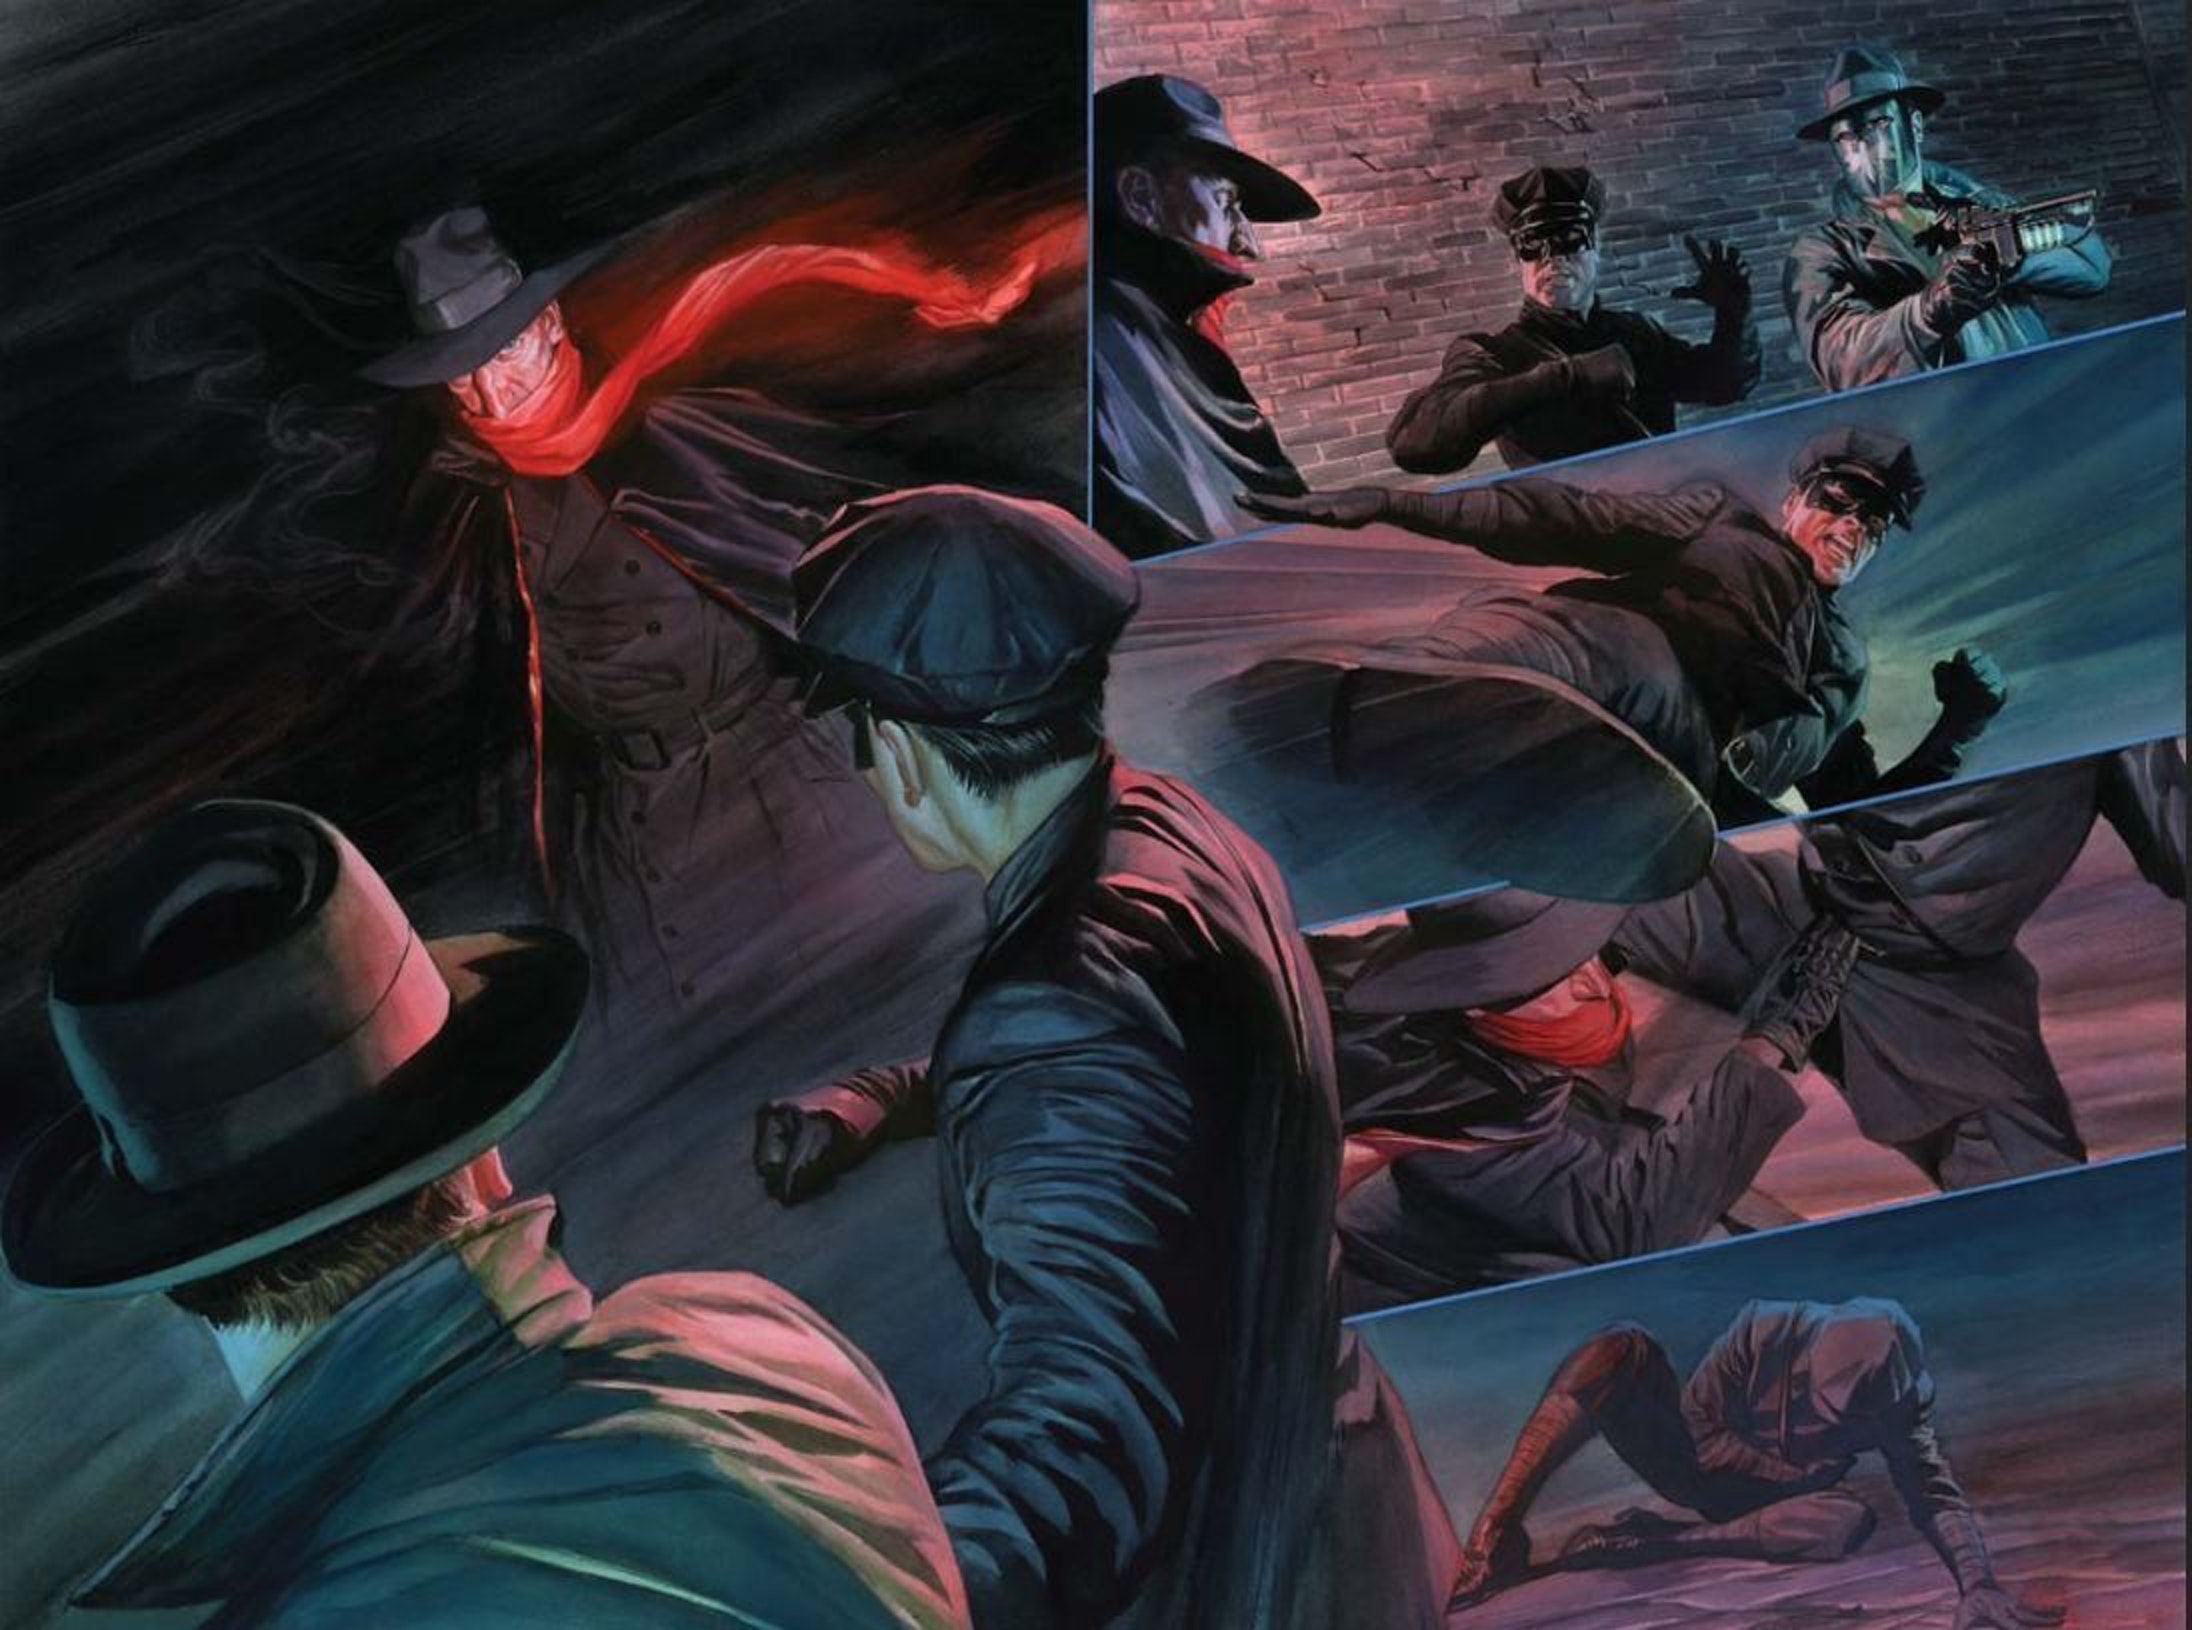 Alex Ross Green Hornet